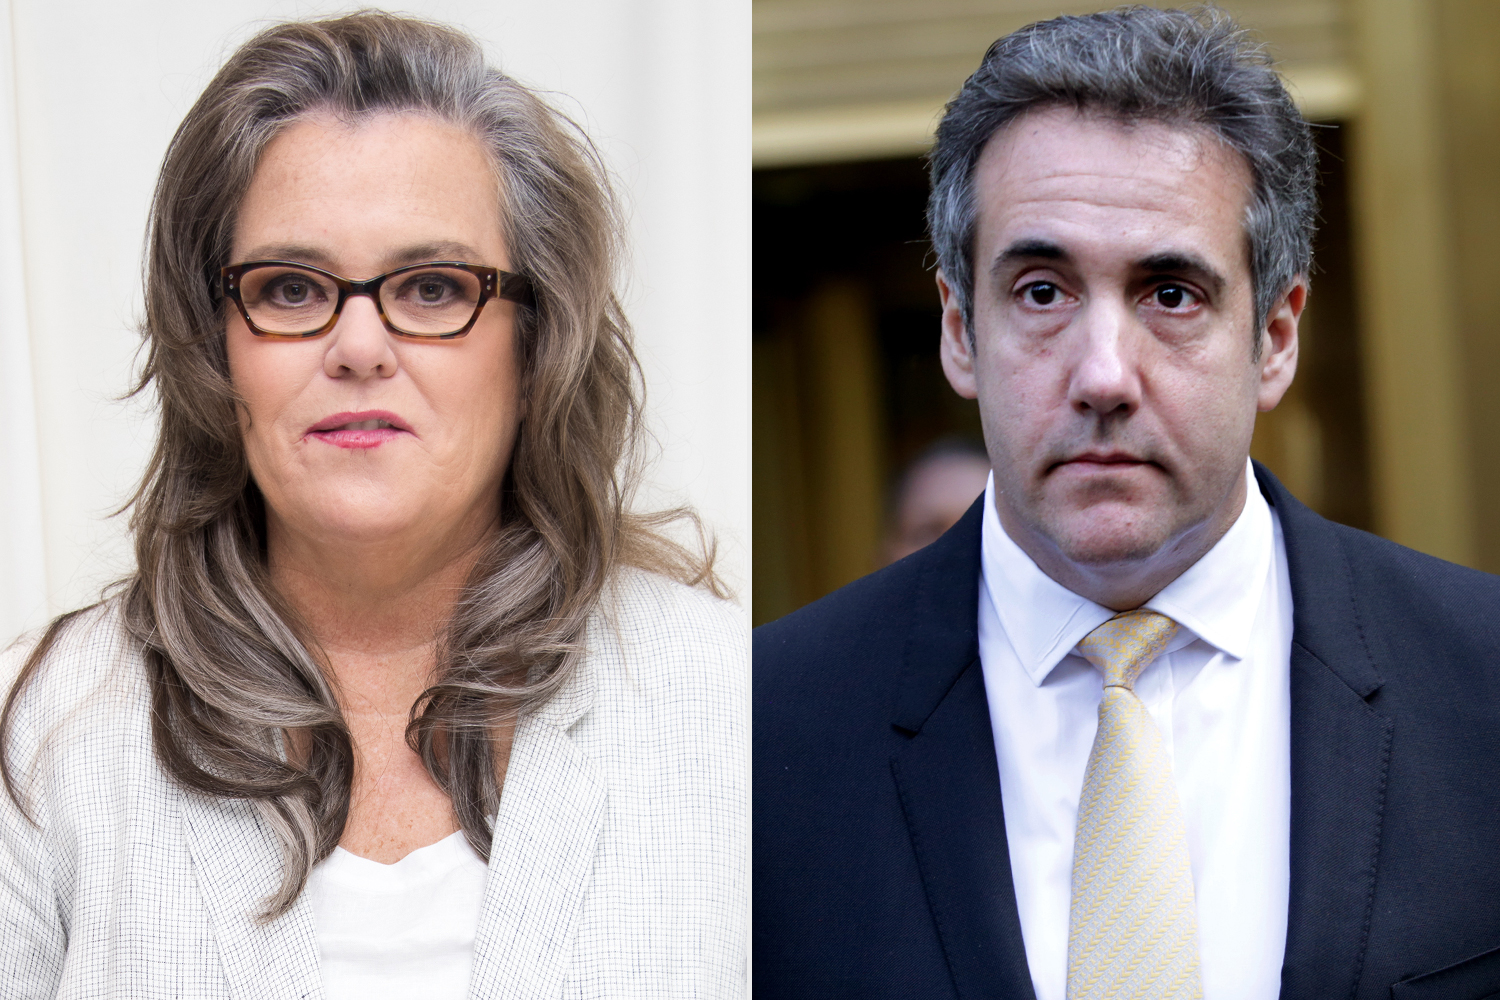 Rosie O'Donnell, Michael Cohen